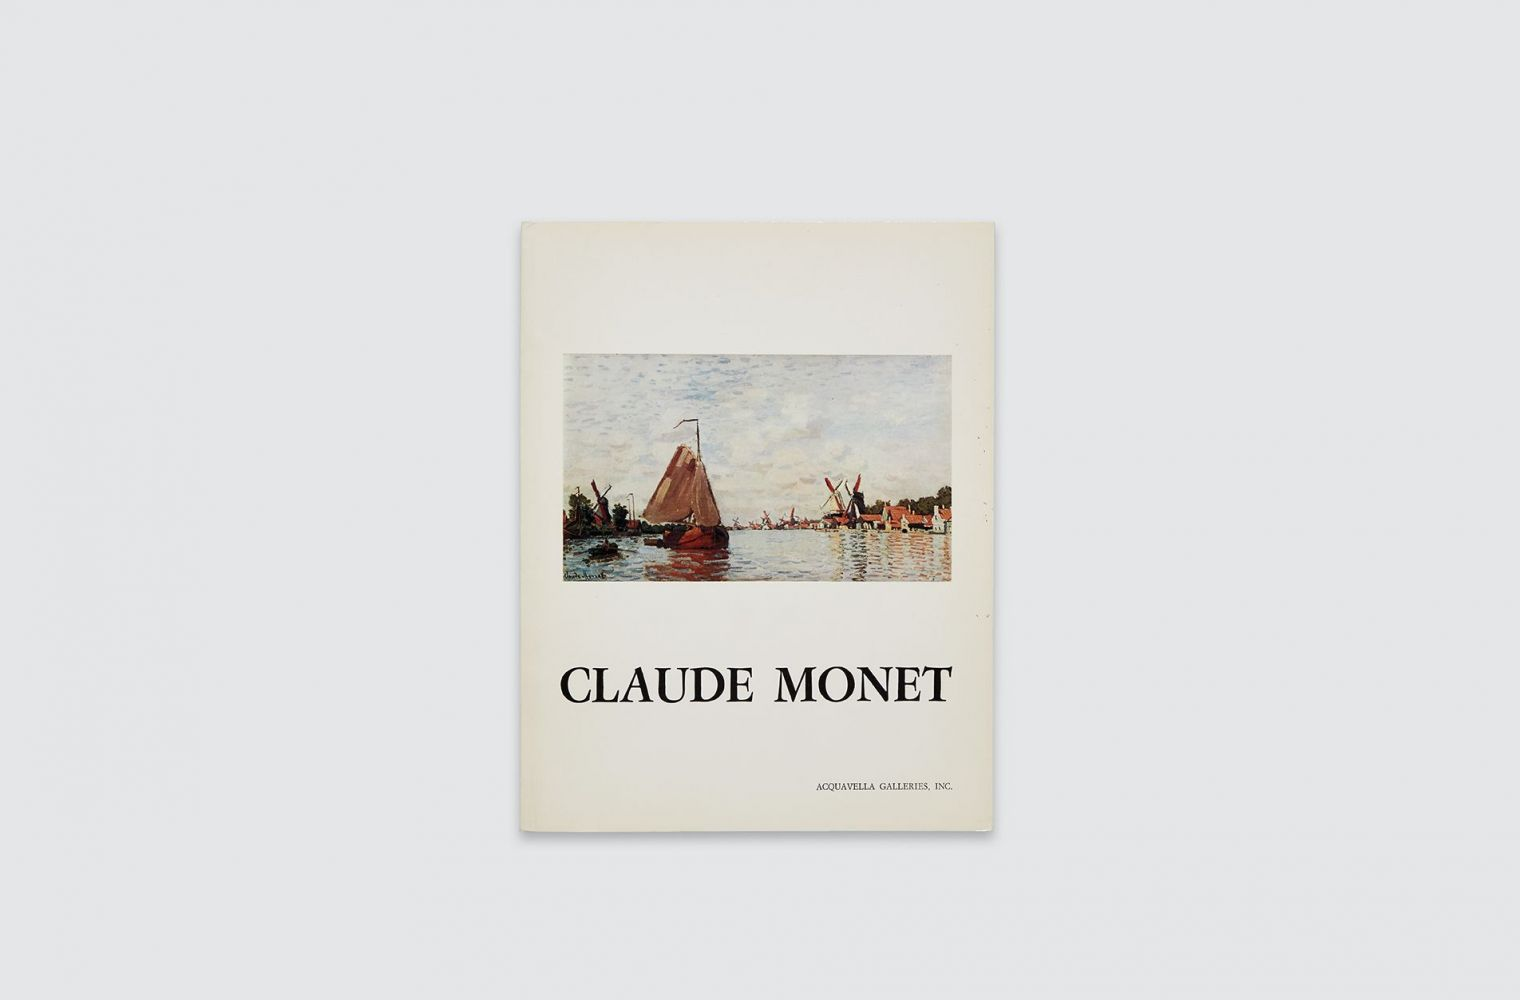 Catalogue for Claude Monet exhibition, fall 1976.